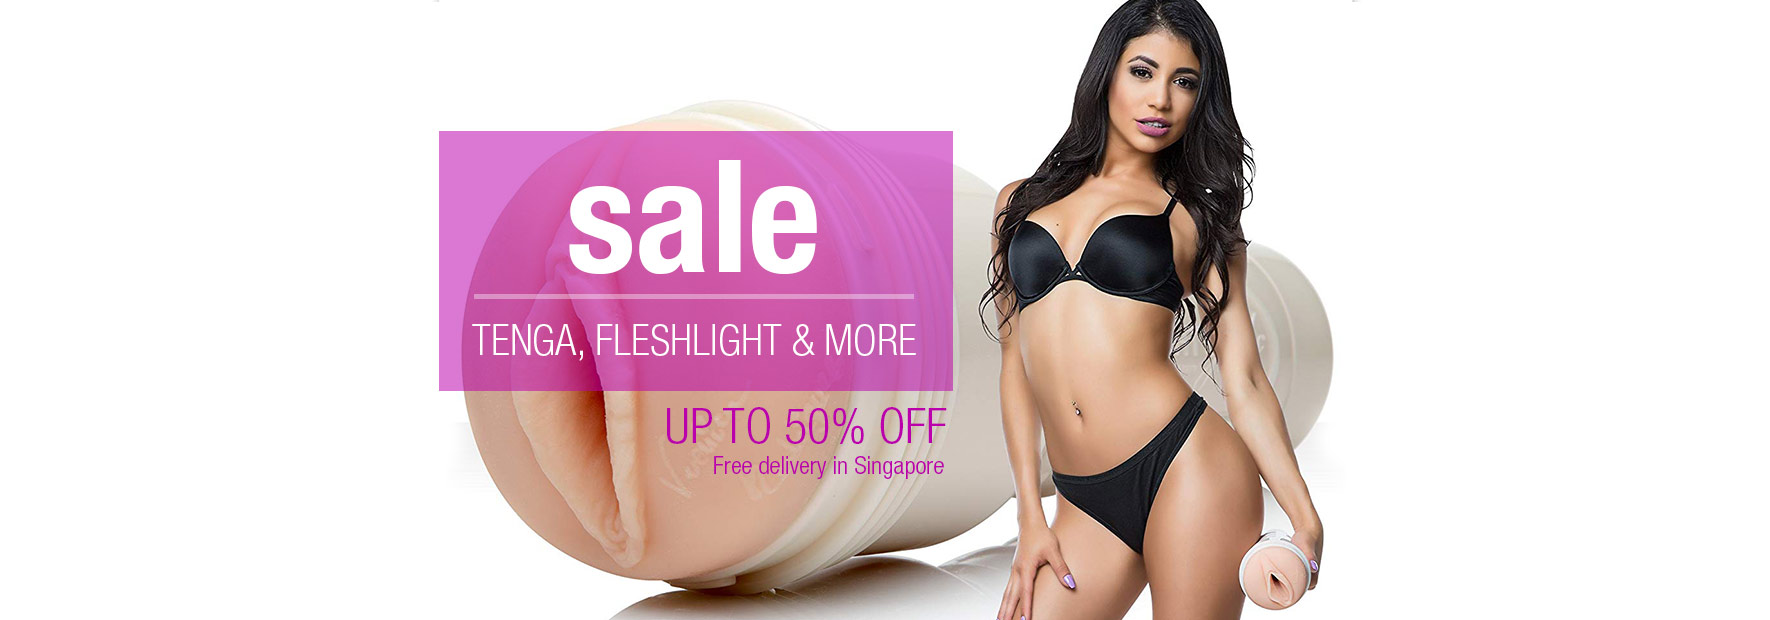 Tenga and Fleshlight Sale Free Delivery for Singapore